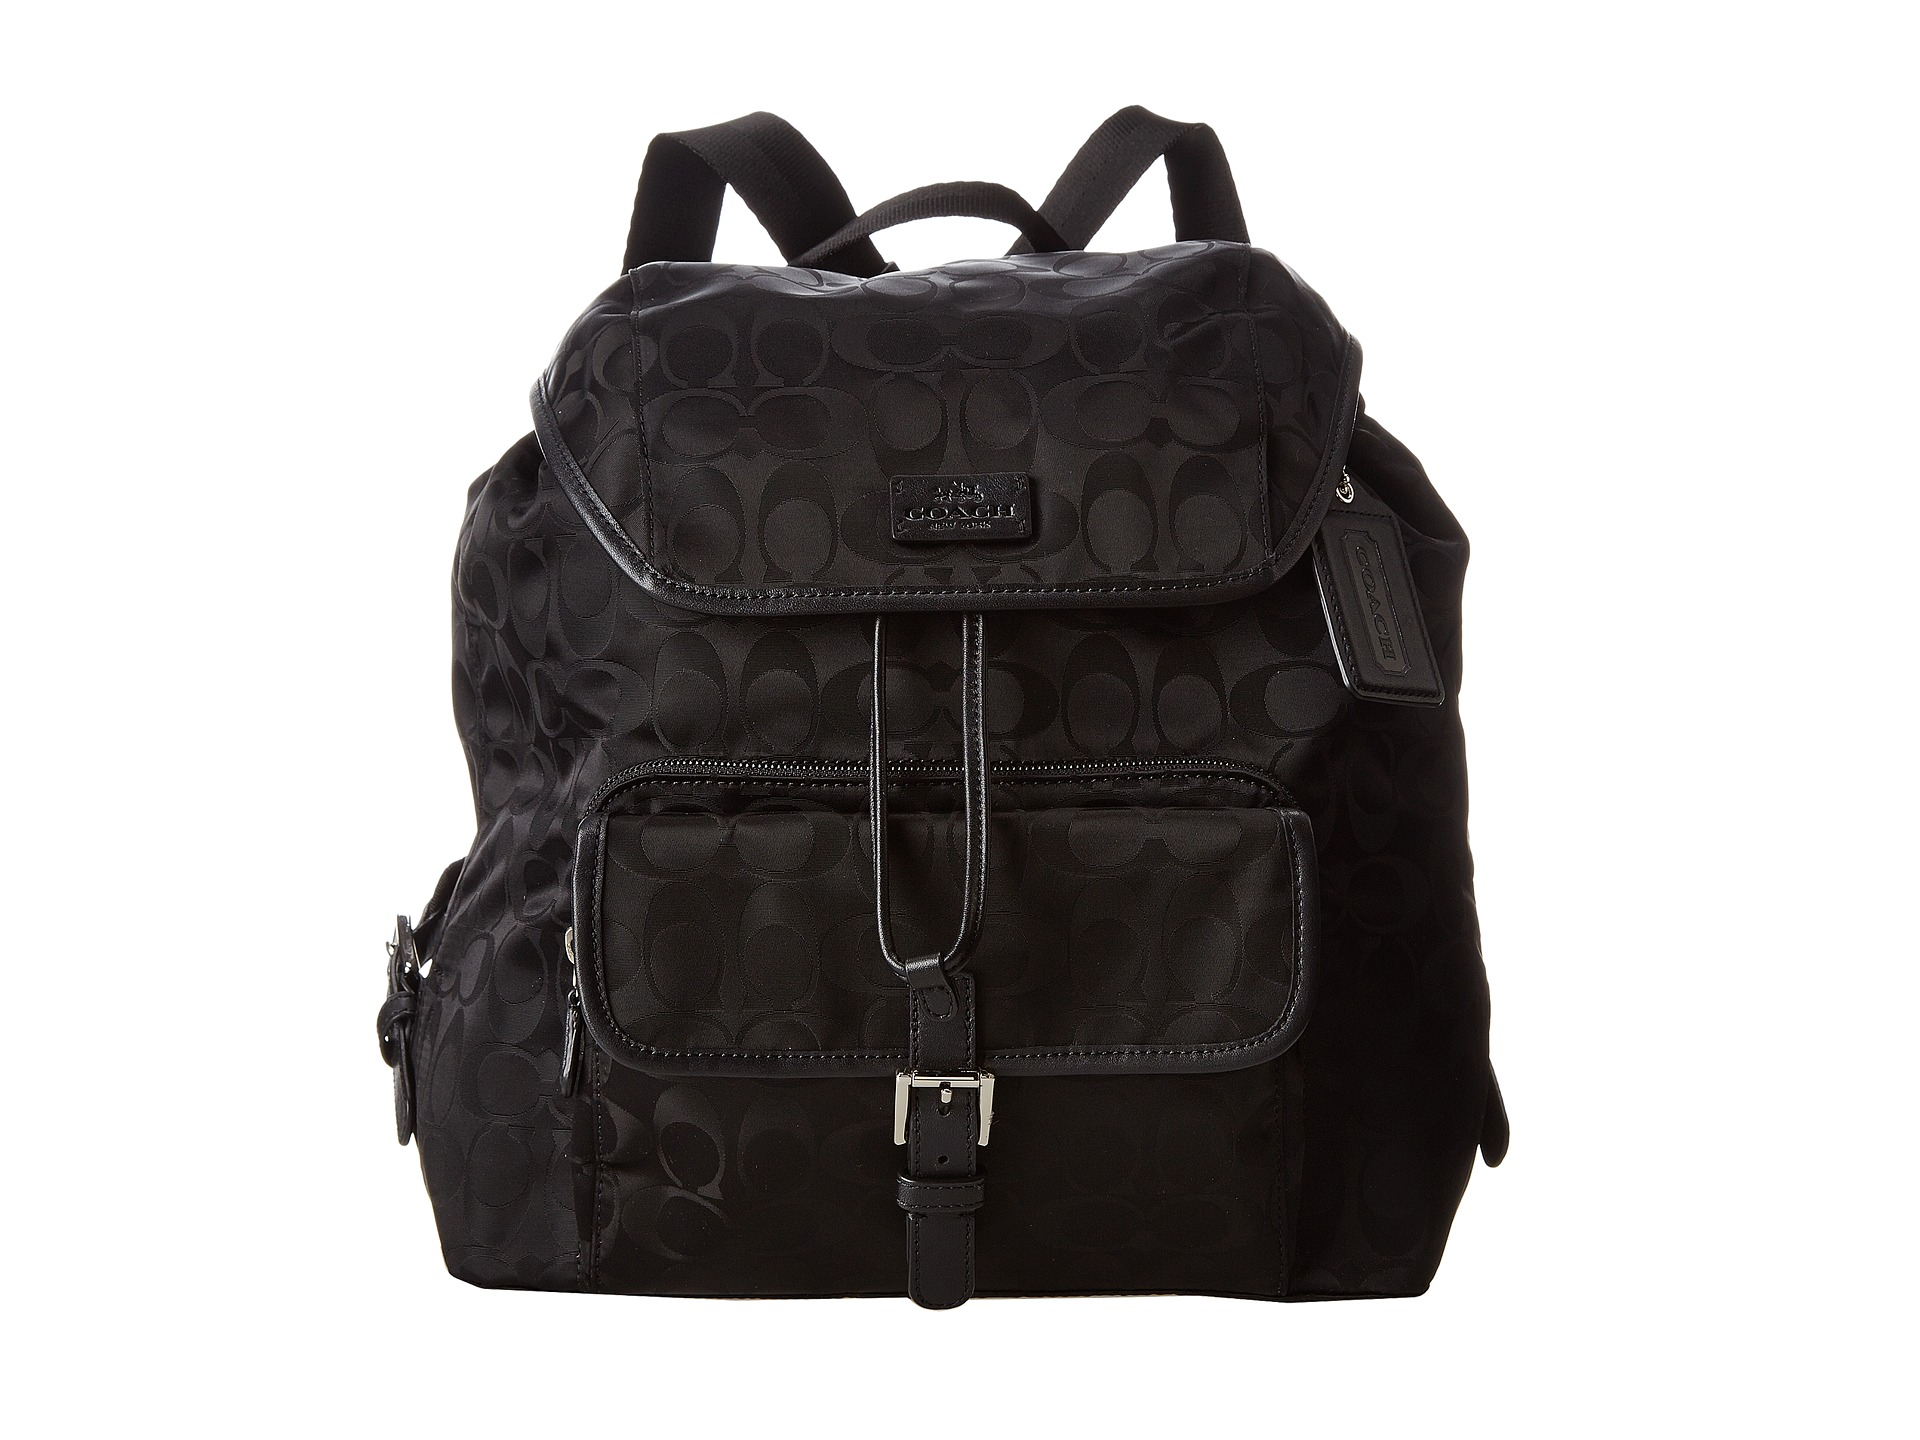 f7c006e893 Coach Signature Nylon Backpack